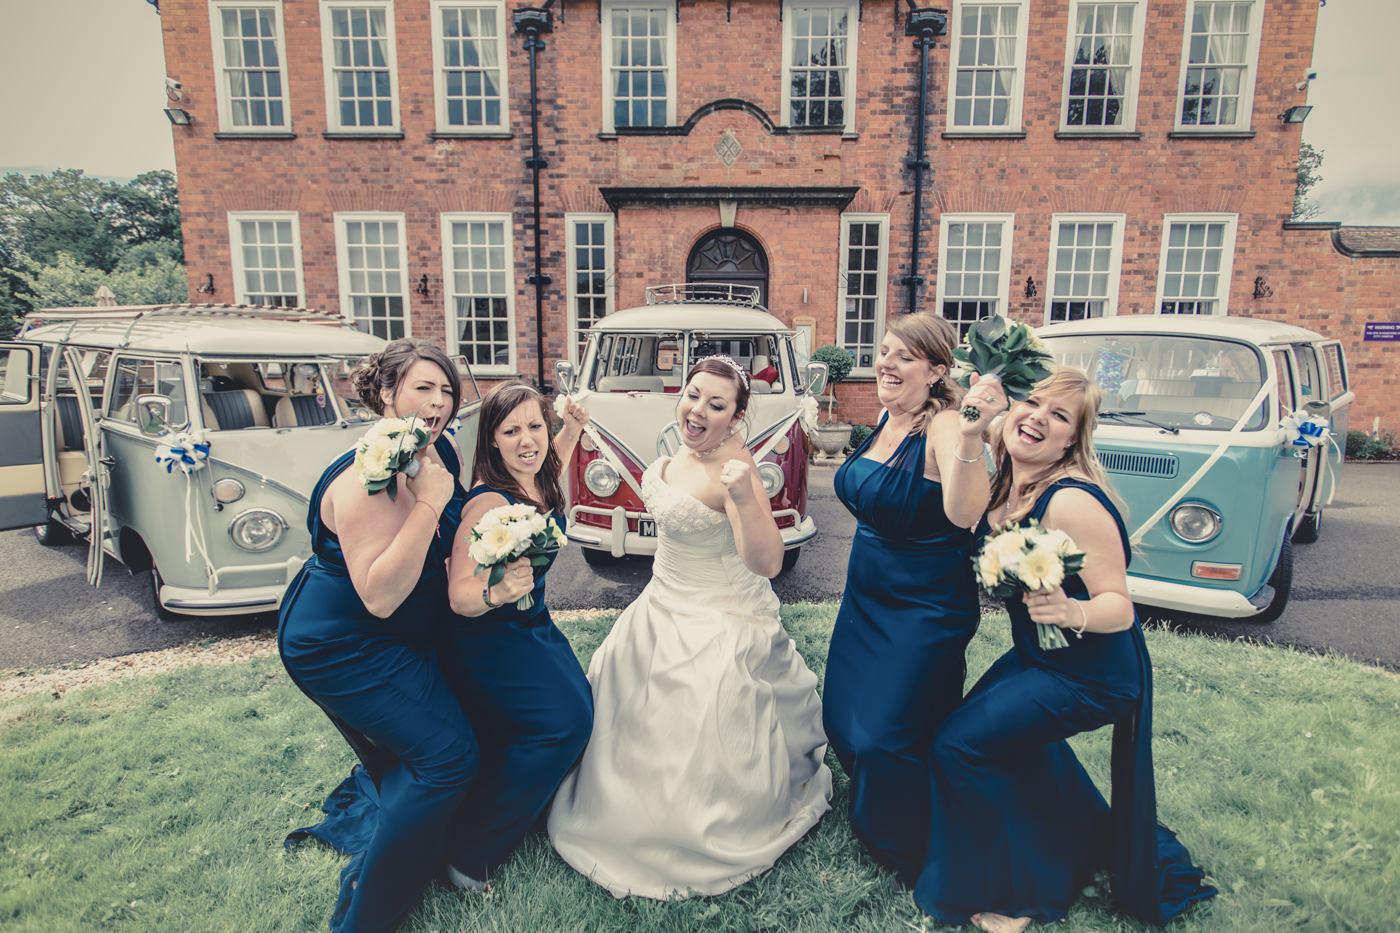 342 - Chris and Natalies Wedding (MAIN) - DO NOT SHARE THIS IMAGES ONLINE -0712.JPG